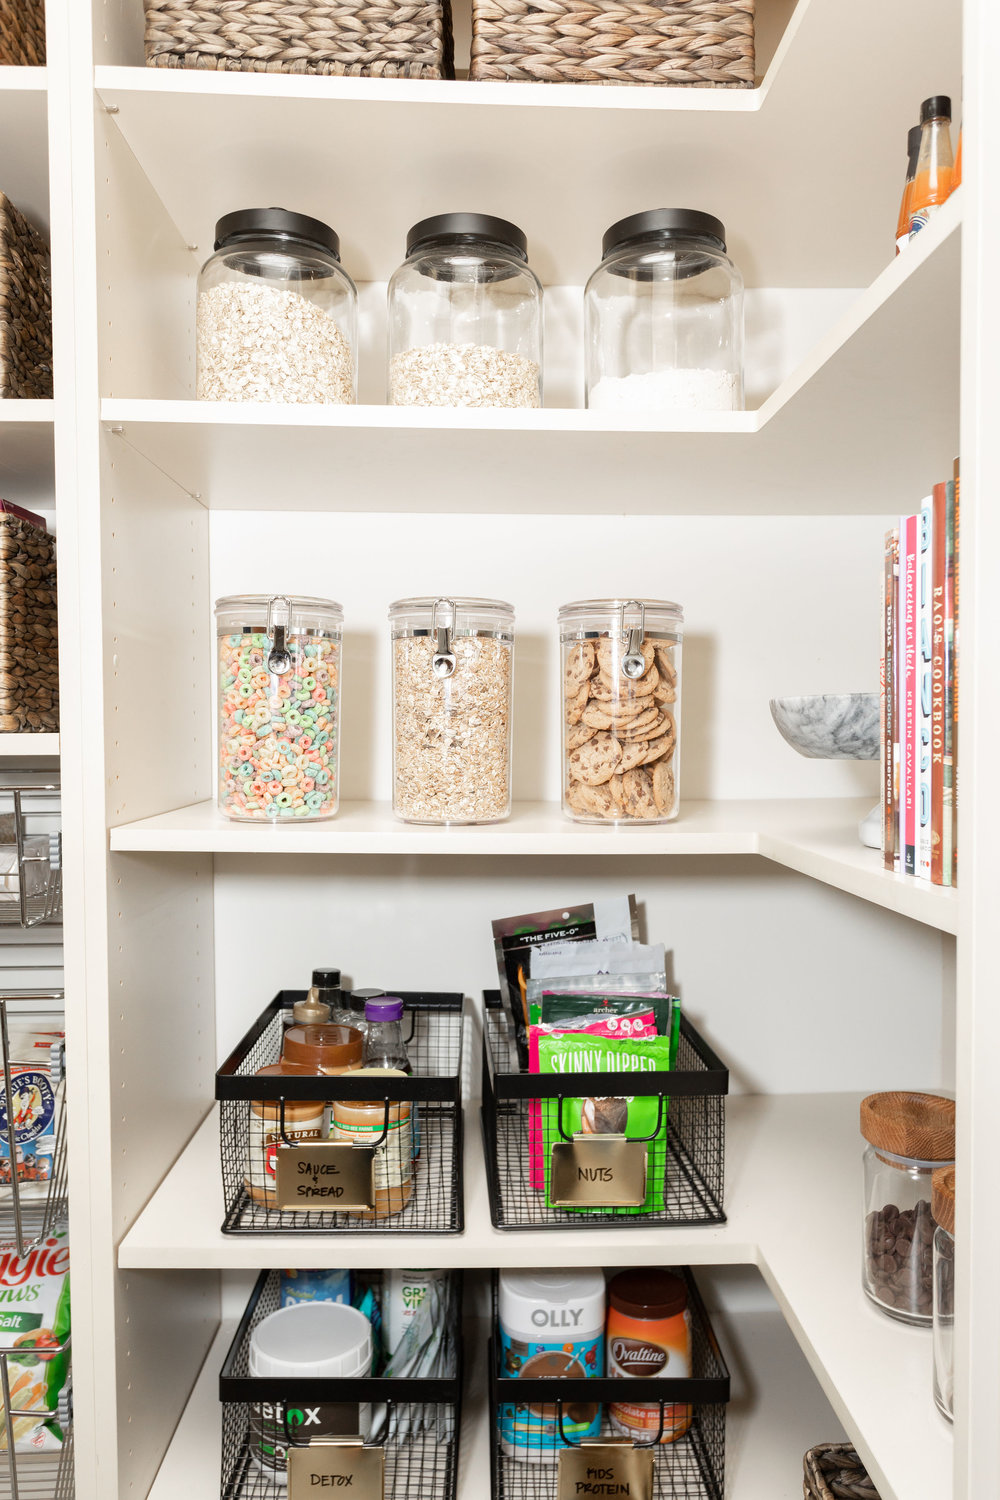 House of Turk | Pantry Organization and Pantry Design